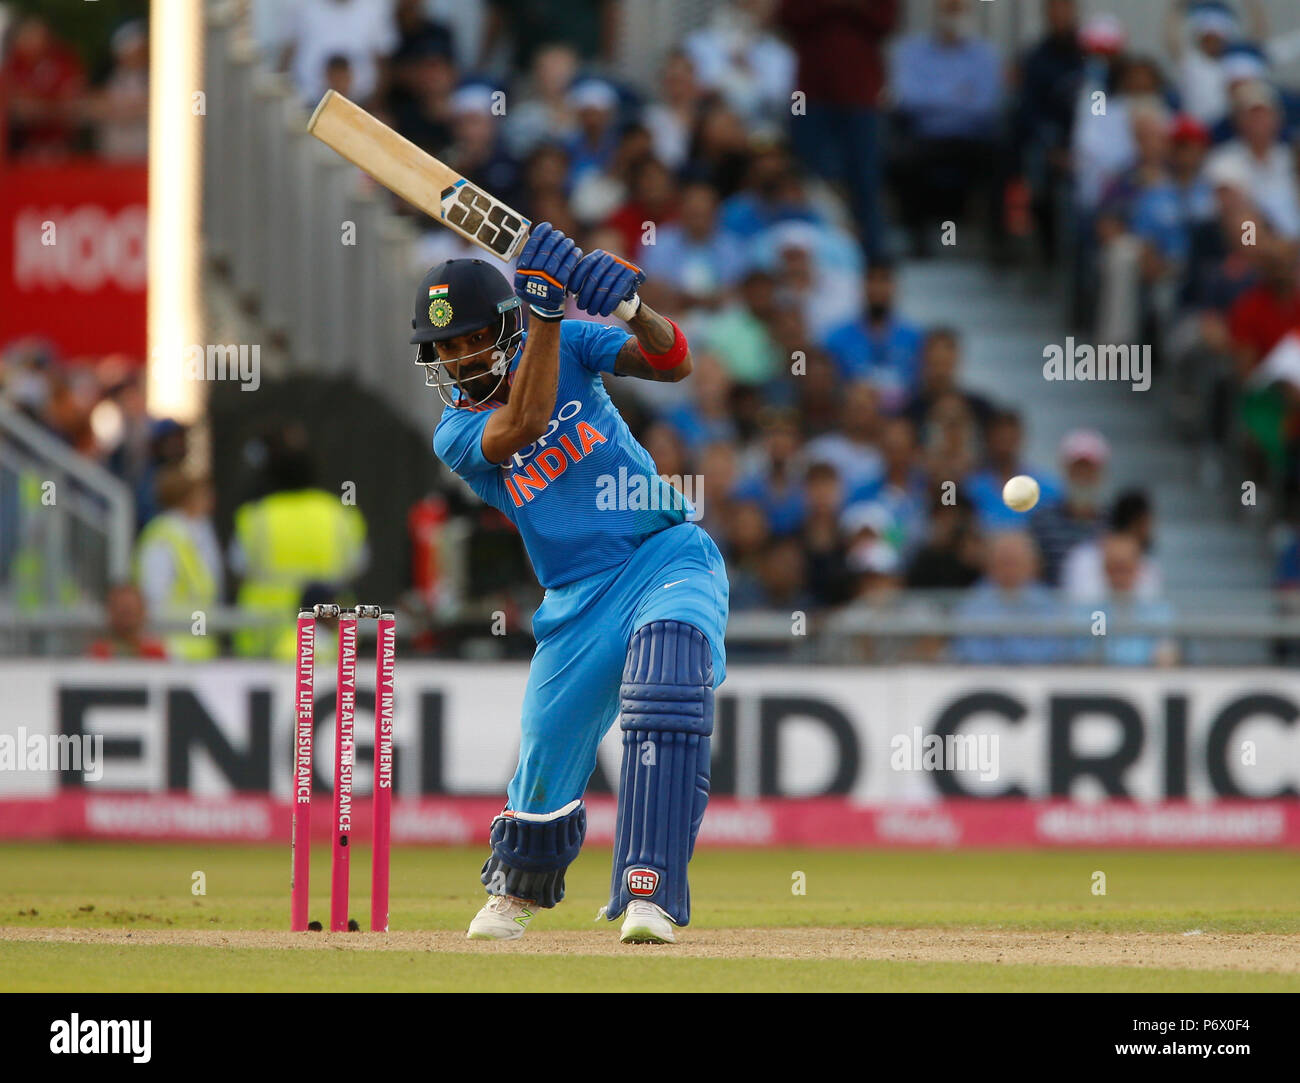 Emirates Old Trafford, Manchester, UK. 3rd July, 2018. International Twenty20 cricket, England versus India; KL Rahul of India hits a straight drive for four on his way to an unbeaten century Credit: Action Plus Sports/Alamy Live News - Stock Image